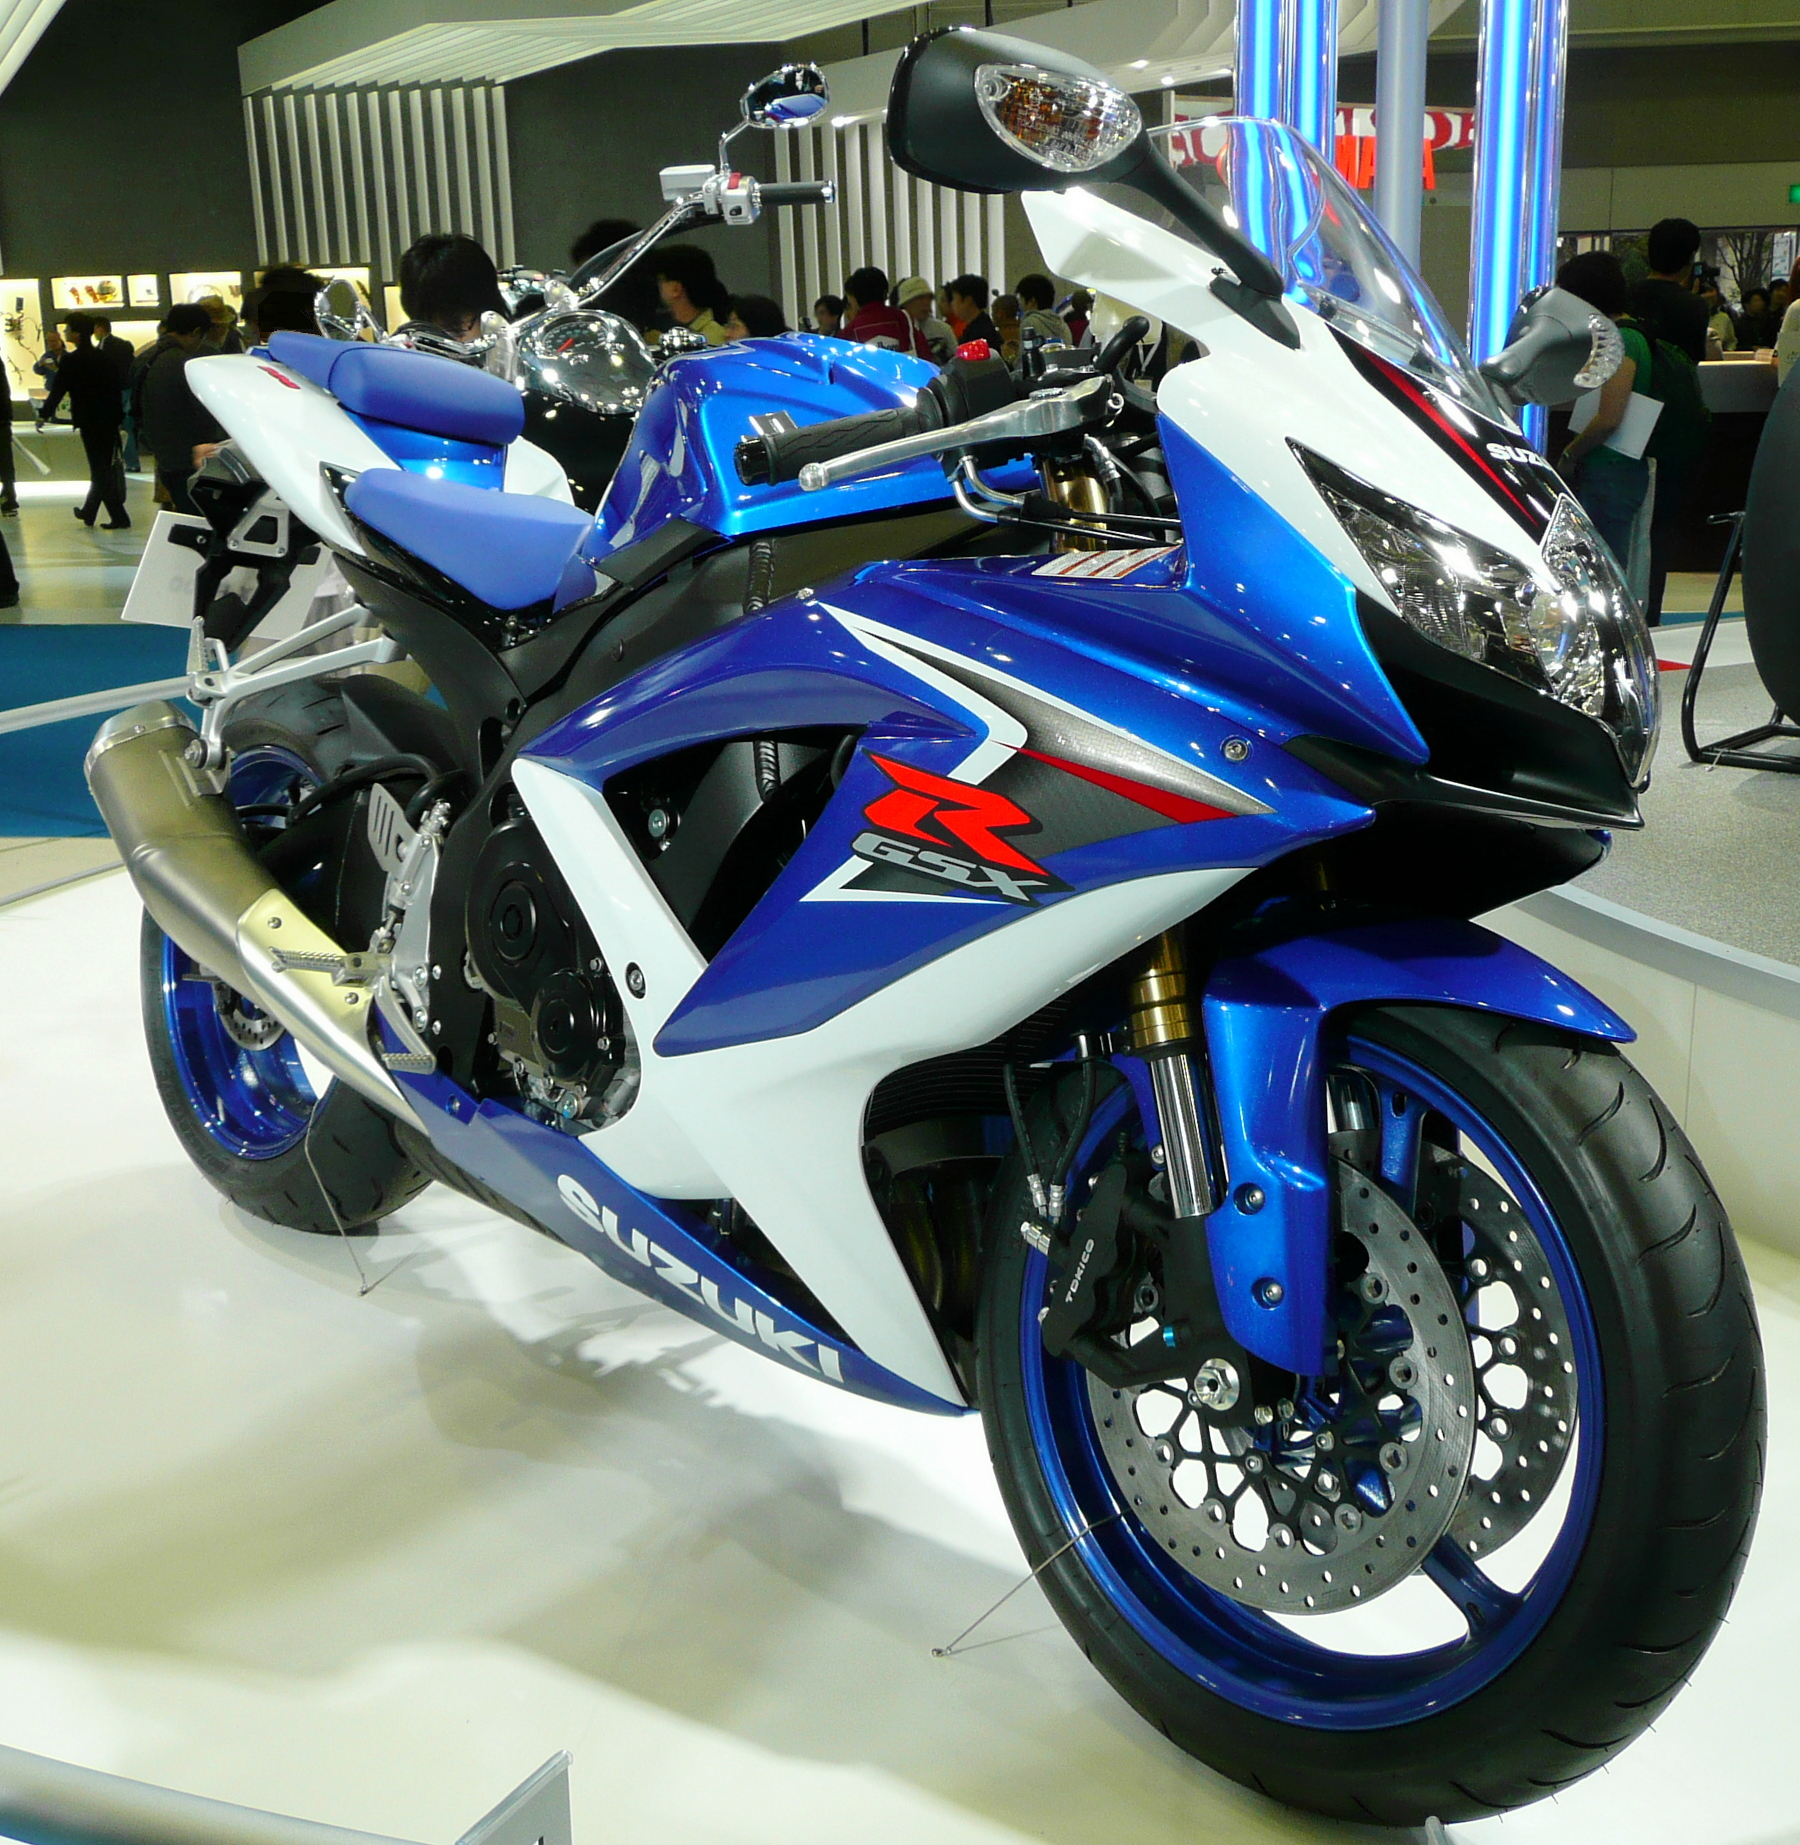 Wondrous Suzuki Gsx R600 Wikipedia Gmtry Best Dining Table And Chair Ideas Images Gmtryco